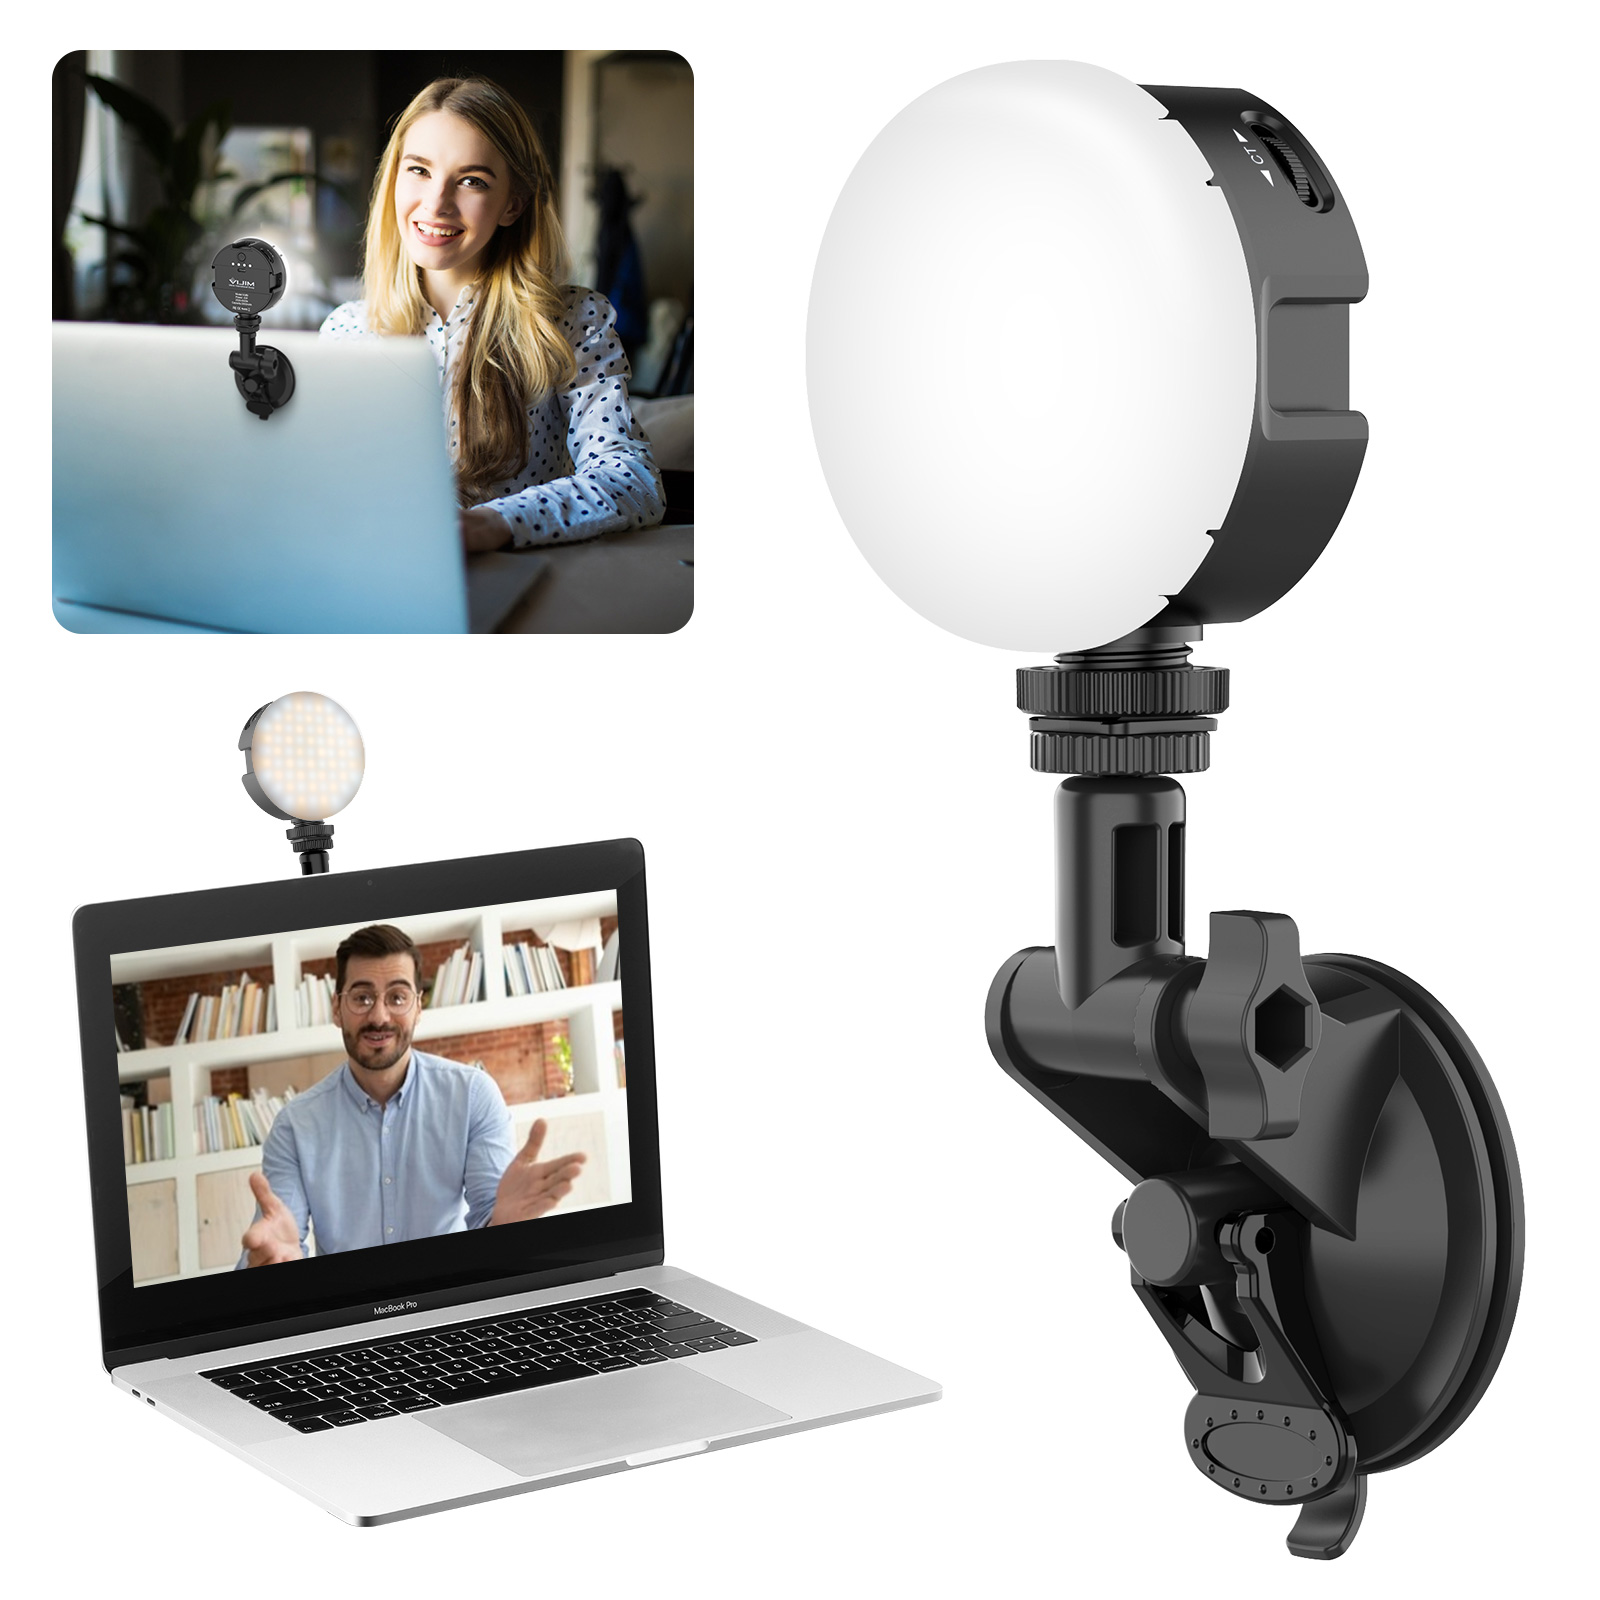 vijim vl69 laptop light kit with suction cup for video conference lighting buy video conference light kit video conference light and suction